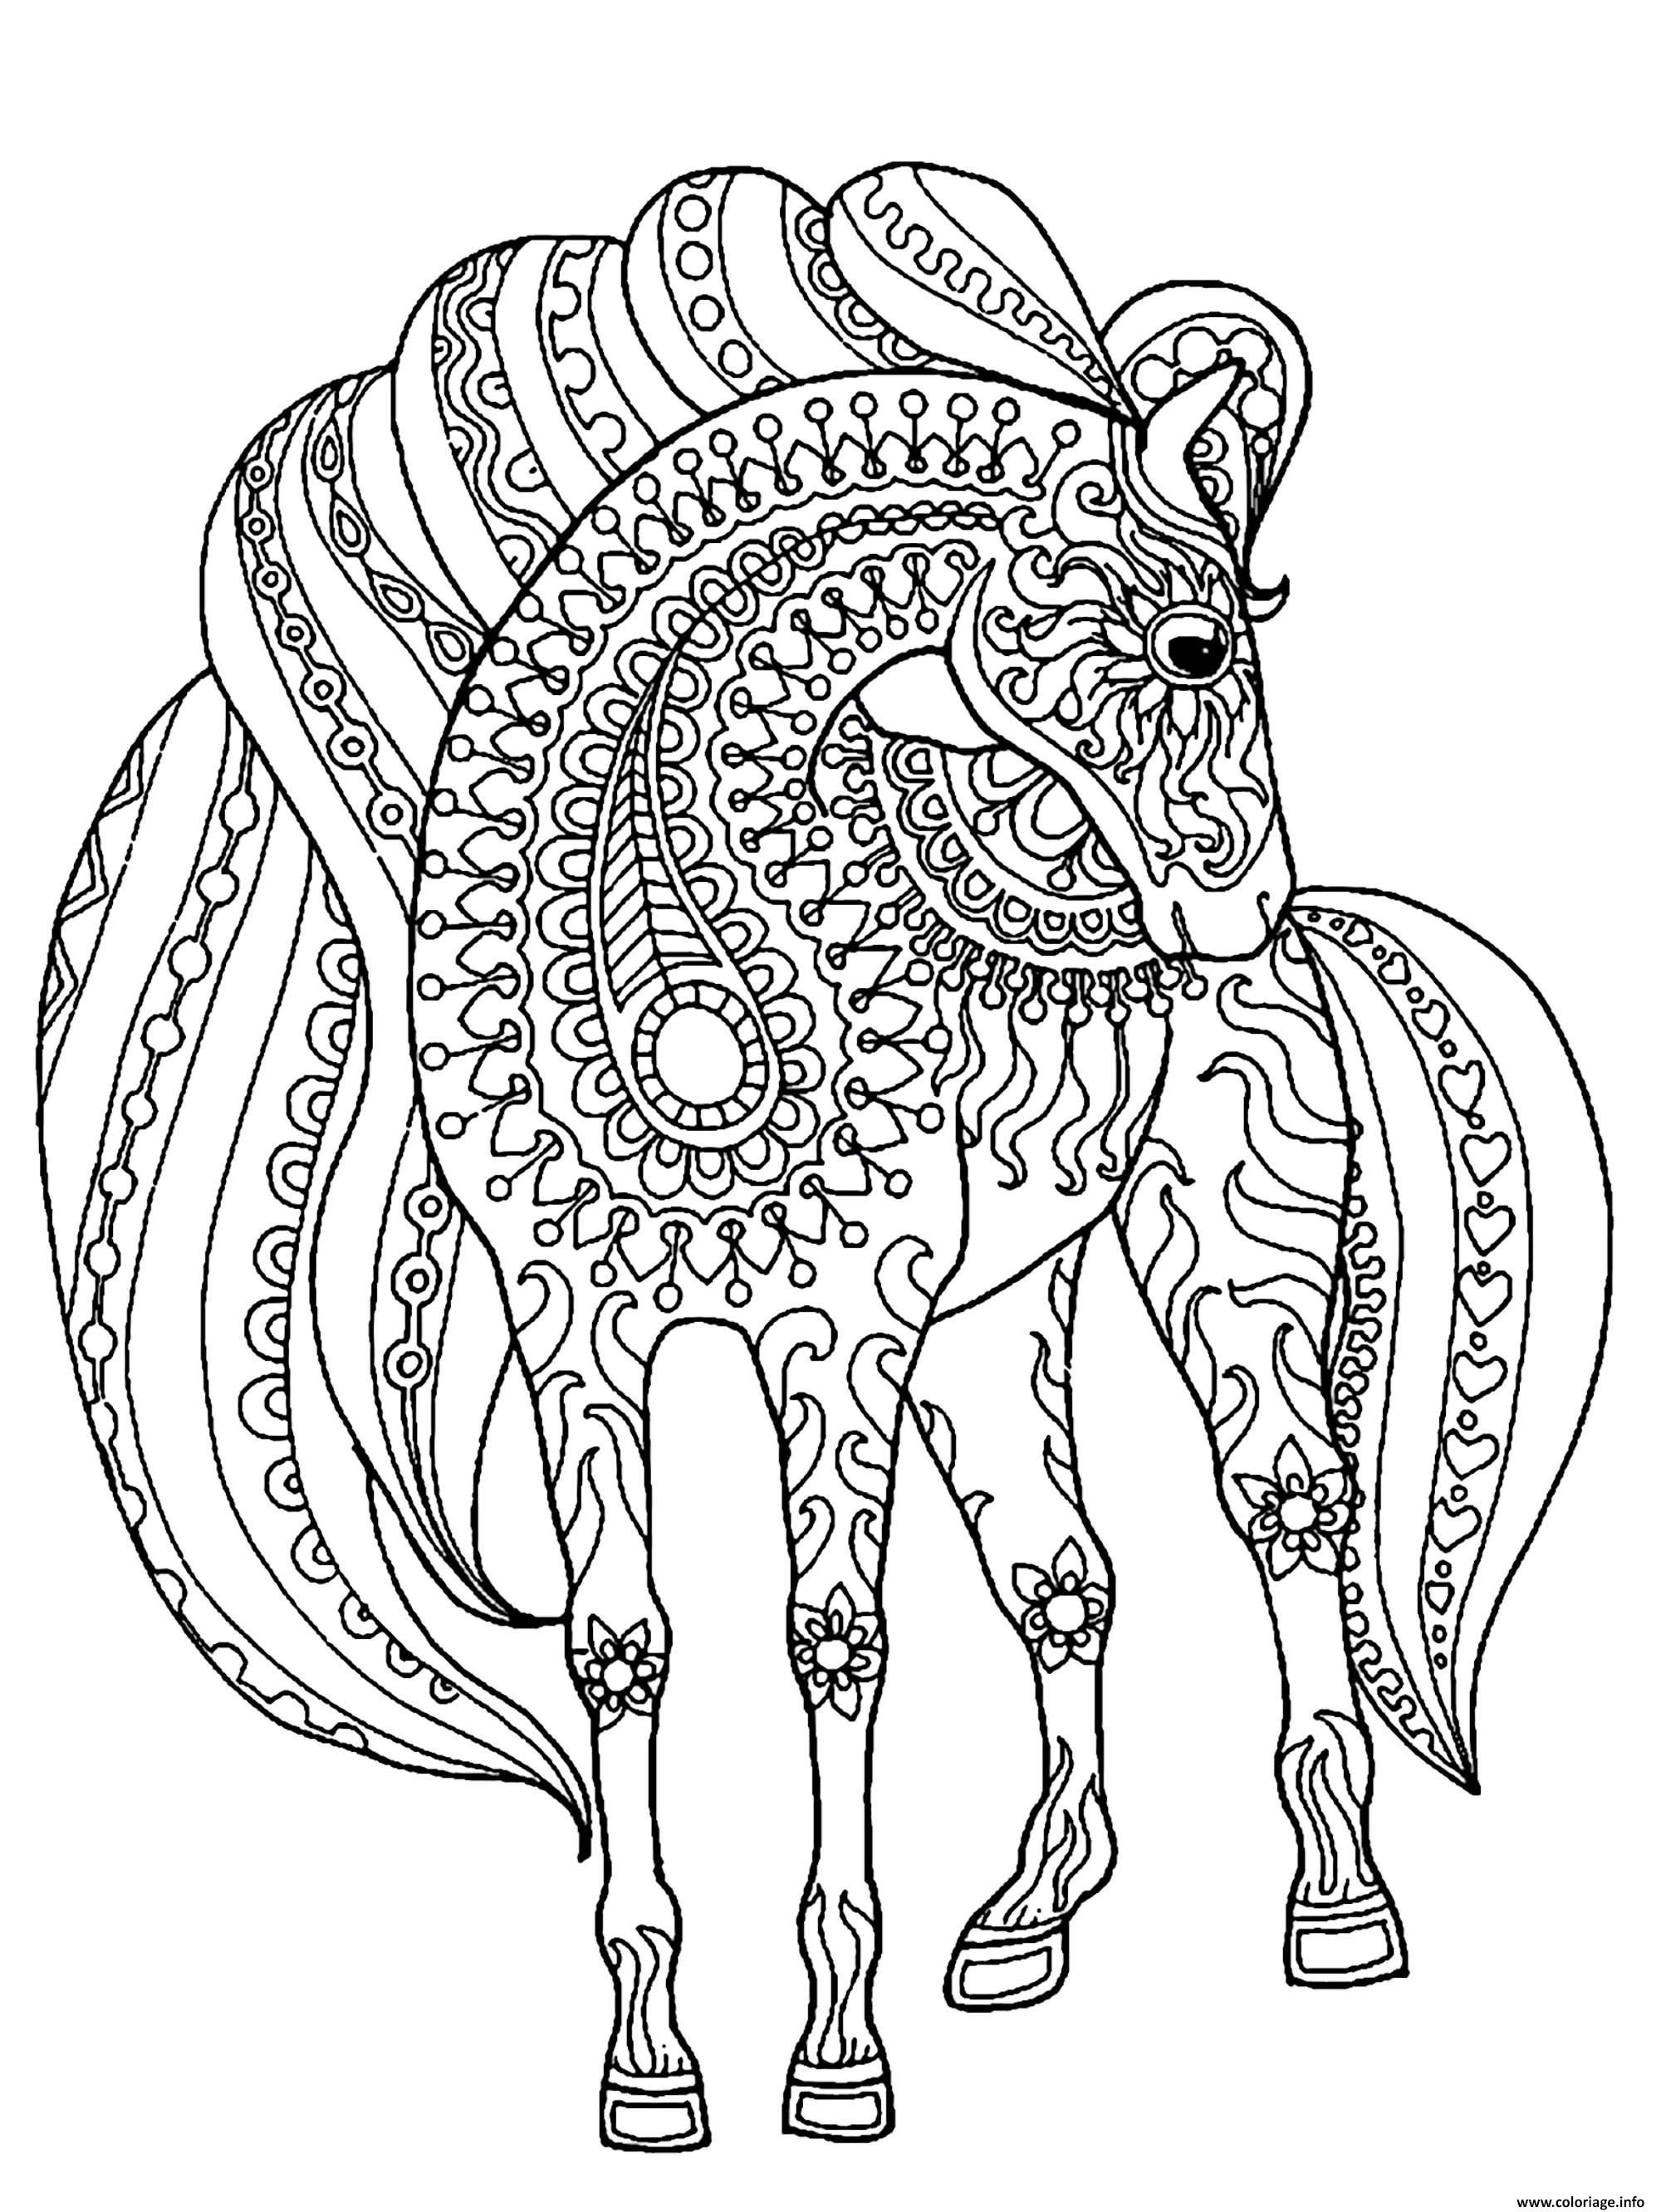 Coloriage Adulte Cheval Simple Zentangle Patterns dessin